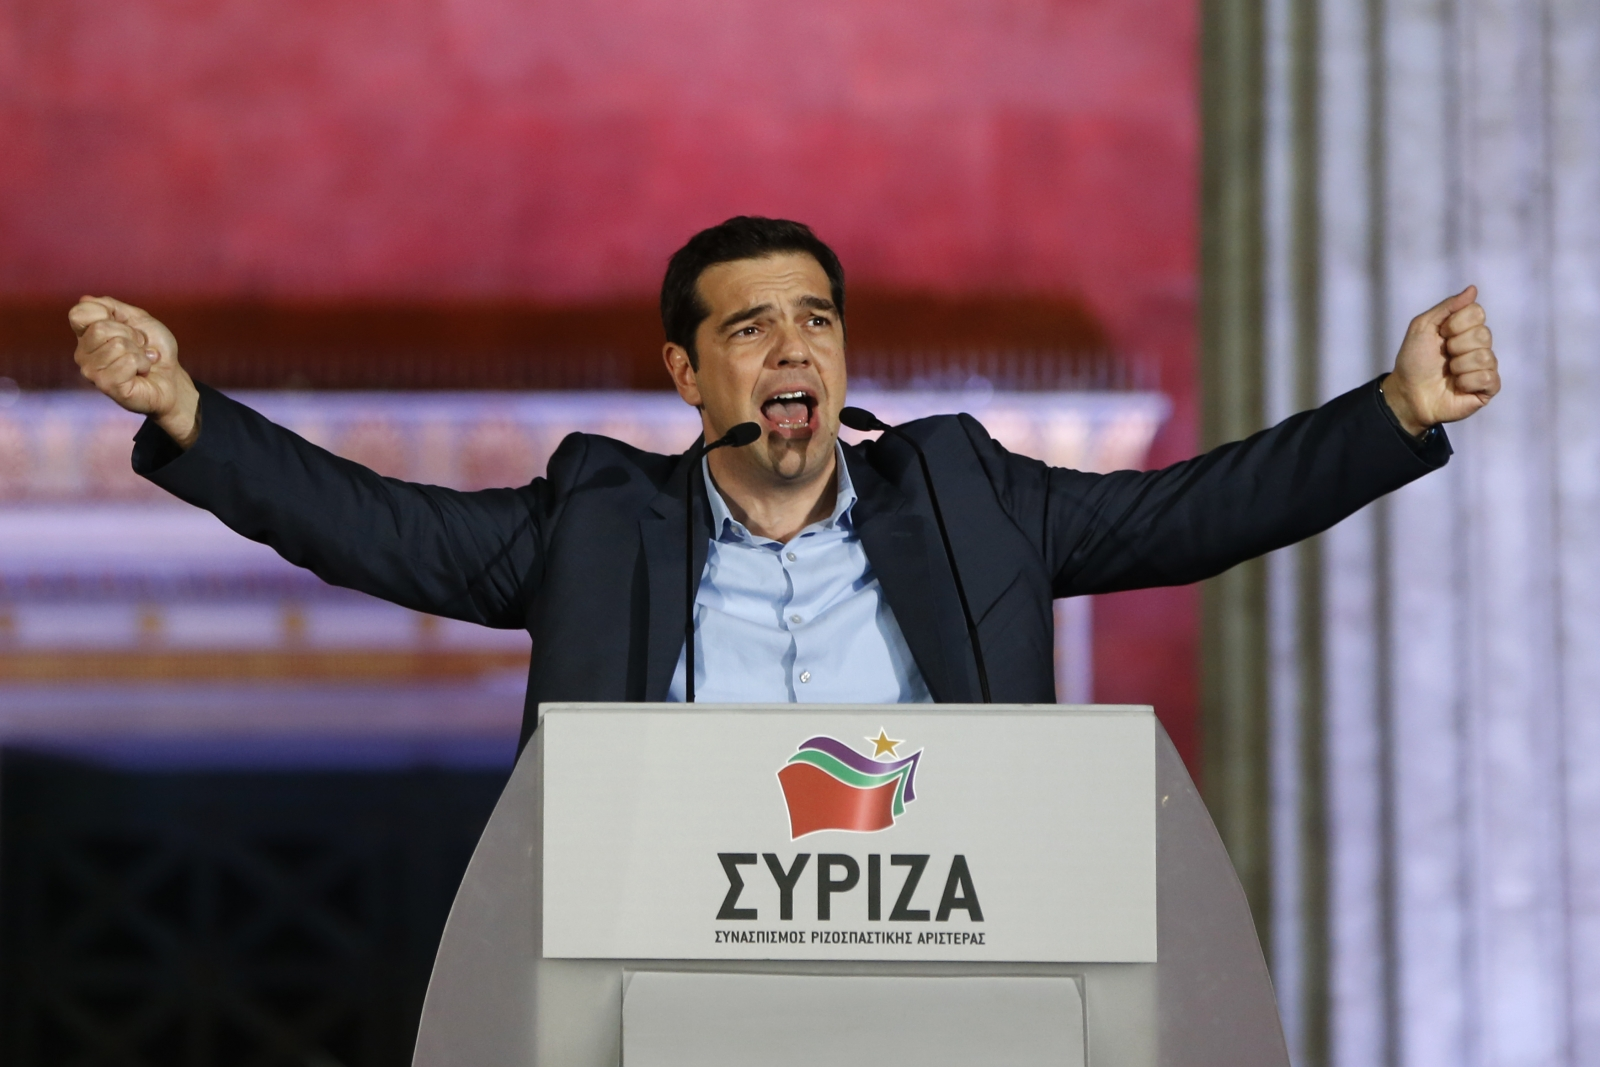 Greece elections: Winner Tsipras declares end of austerity